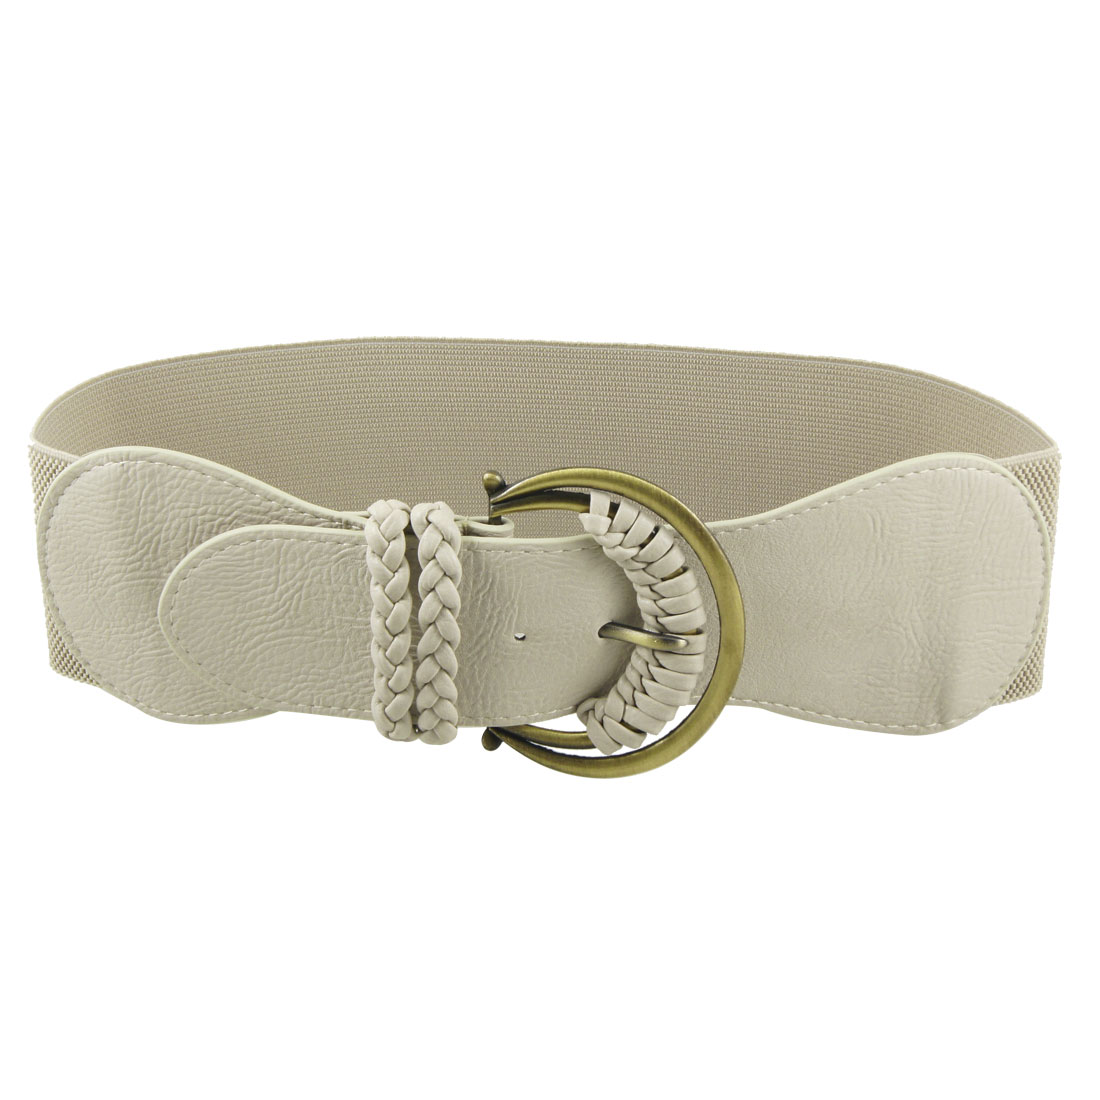 Woman Braid Decor Bronze Tone Pin Buckle Wide Waistband Belt Khaki